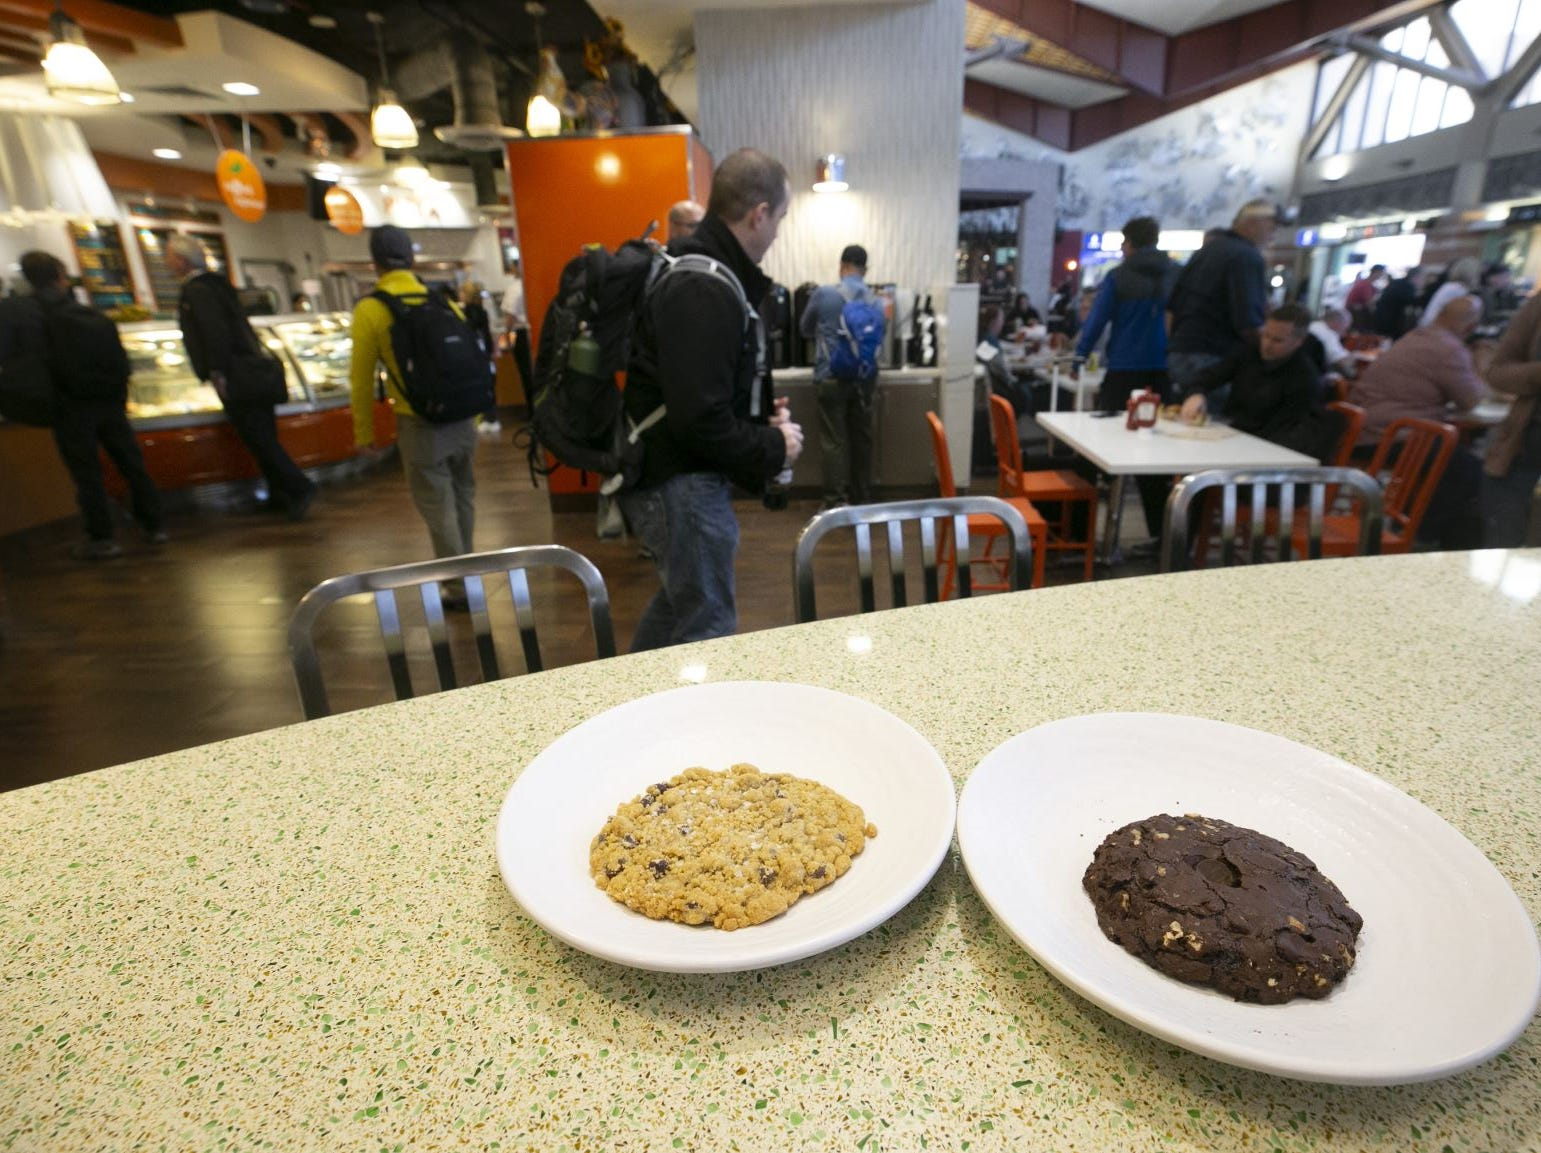 Salted Chocolate Chip Cookie (left) and Gulten Free Cookie at La Grande Orange in Terminal Four of Phoenix Sky Harbor International Airport on Tuesday, November 13, 2018.